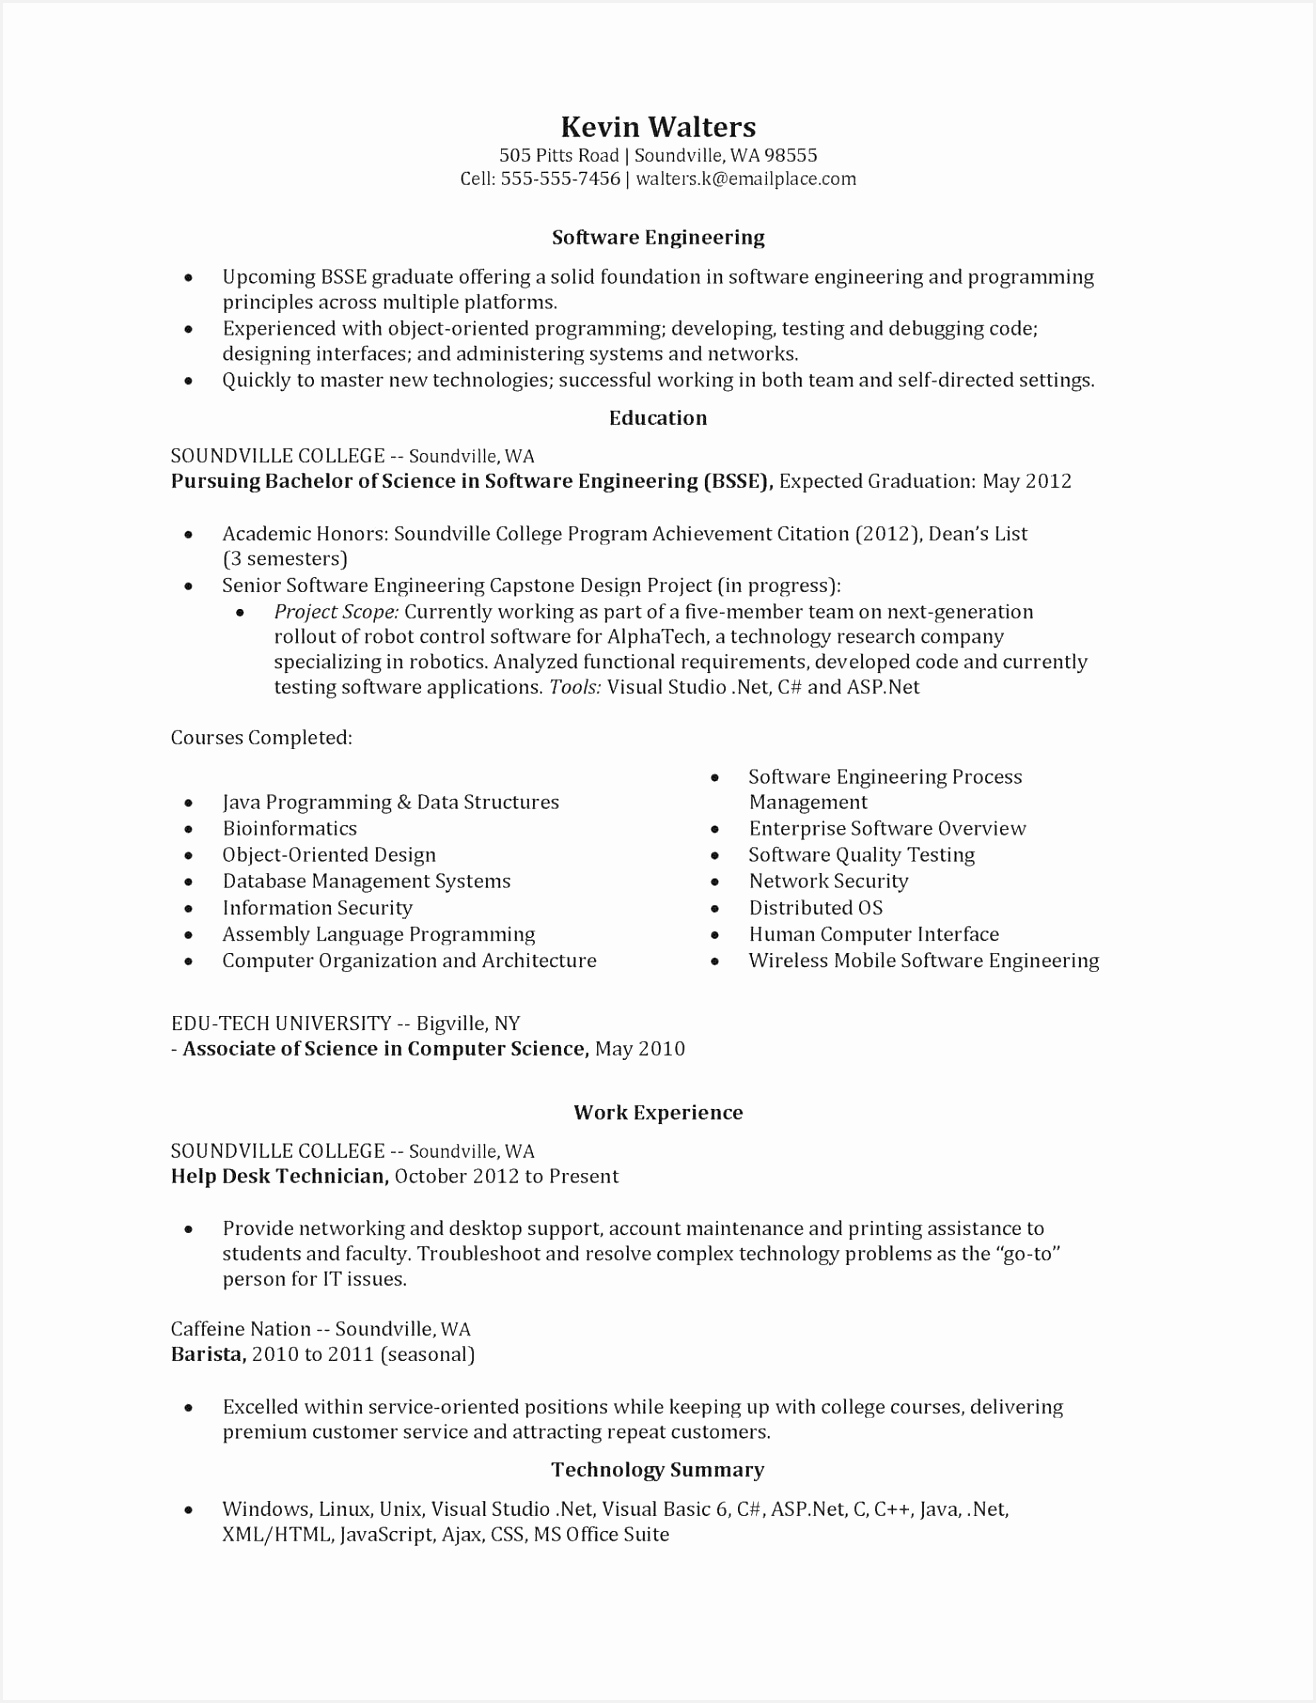 Resume Samples for Graduate School Qcsae Lovely Graduate School Resume Examples Unique Lpn Resume Sample New Line Of Resume Samples for Graduate School Zysts Elegant Graduate School Resume Sample Examples Graduate School Resume